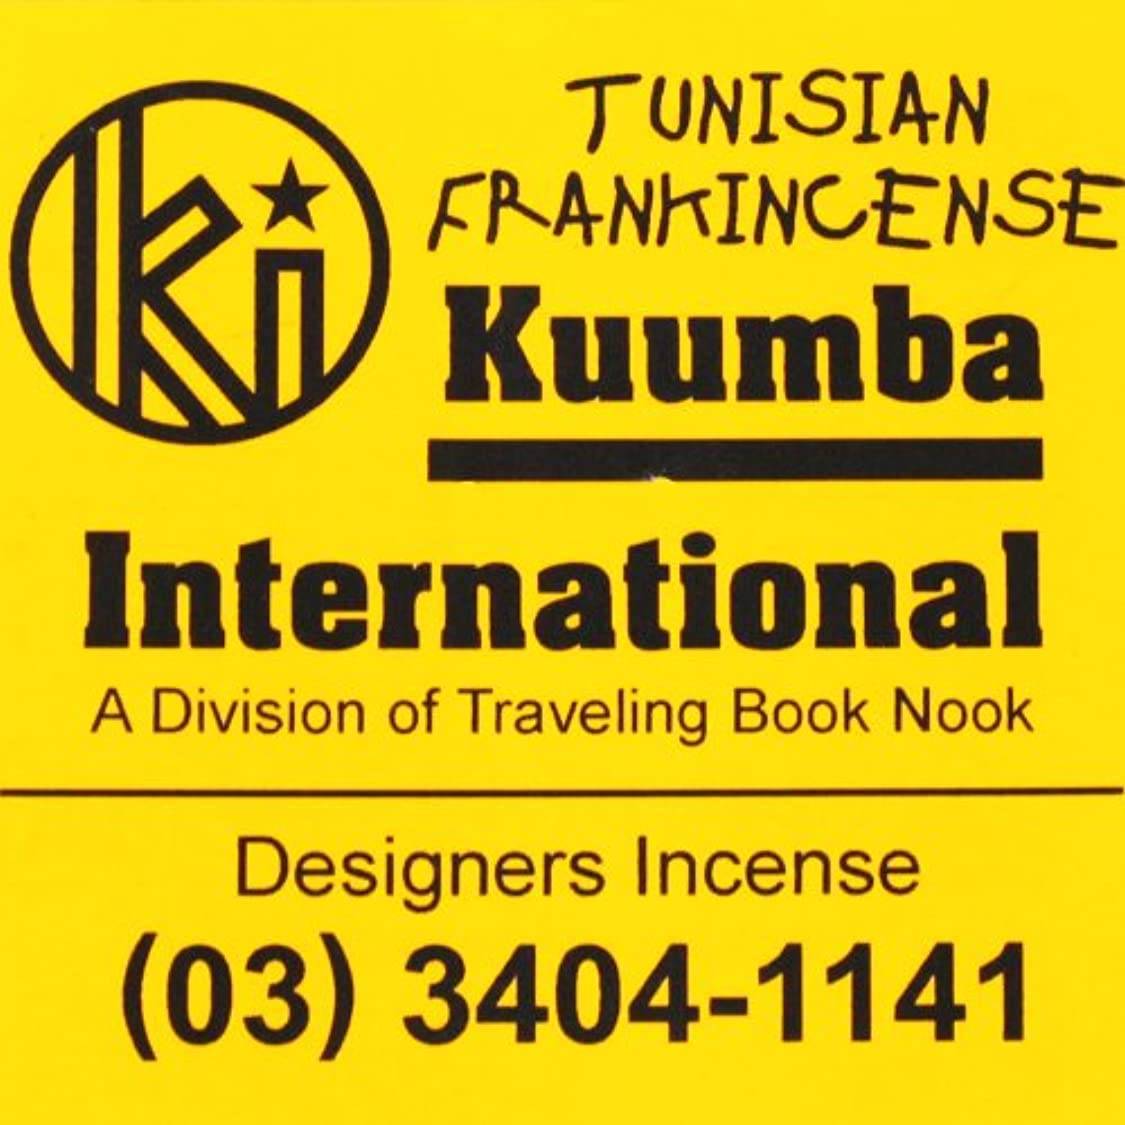 秘書不安定な共産主義者(クンバ) KUUMBA『classic regular incense』(TUNISIAN FRANKINCENSE) (Regular size)